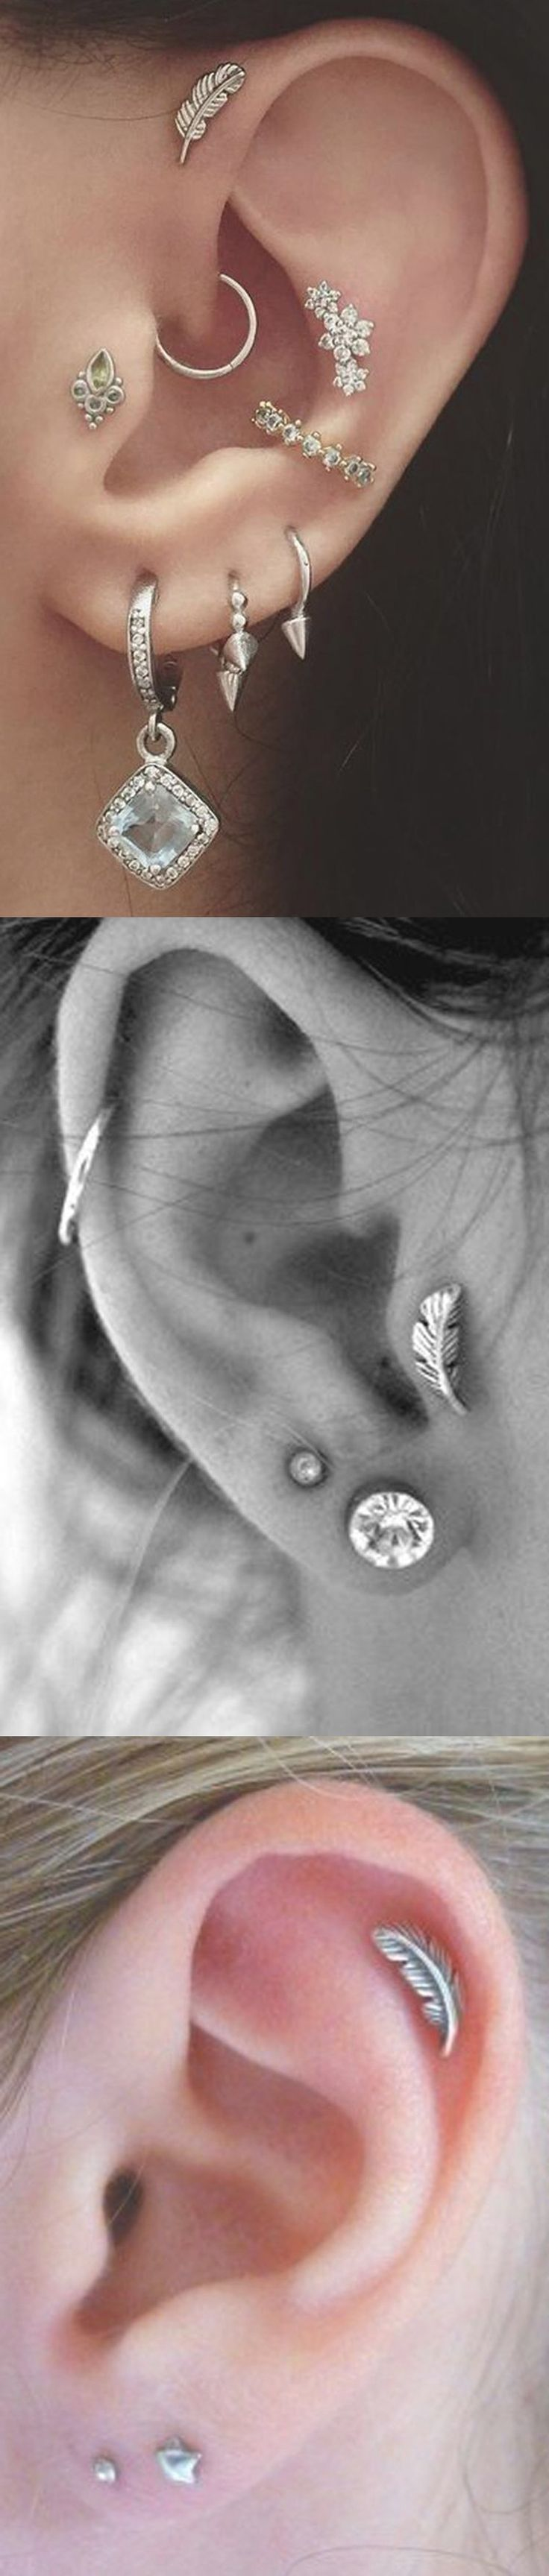 Cute Boho Ear Piercing Ideas at MyBodiArt.com - Leaf Triple Forward Stud - Rook Ring - Cartilage Hoops  Our inspiration for our #minimalistjewelry #minimalistjewellery  #minimalist #jewellery #jewelry #jewelleries #jewelries #minimalistaccessories  #bangles #bracelets #rings #necklace #earrings #womensaccessories #accessories #earpiercingideas